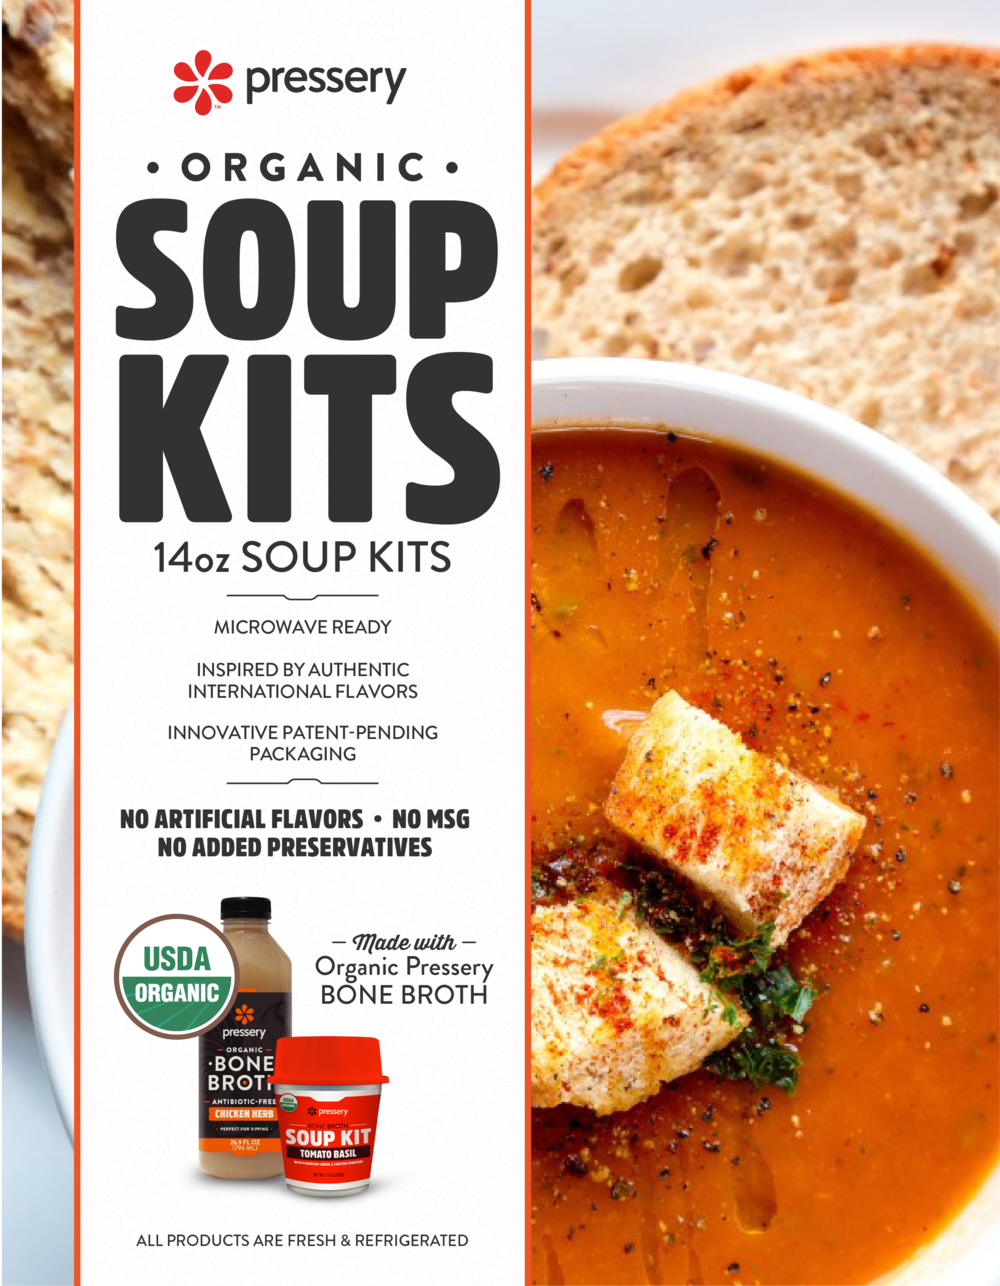 Pressery_Soup_Kit_Sheet_30JAN19-01.png